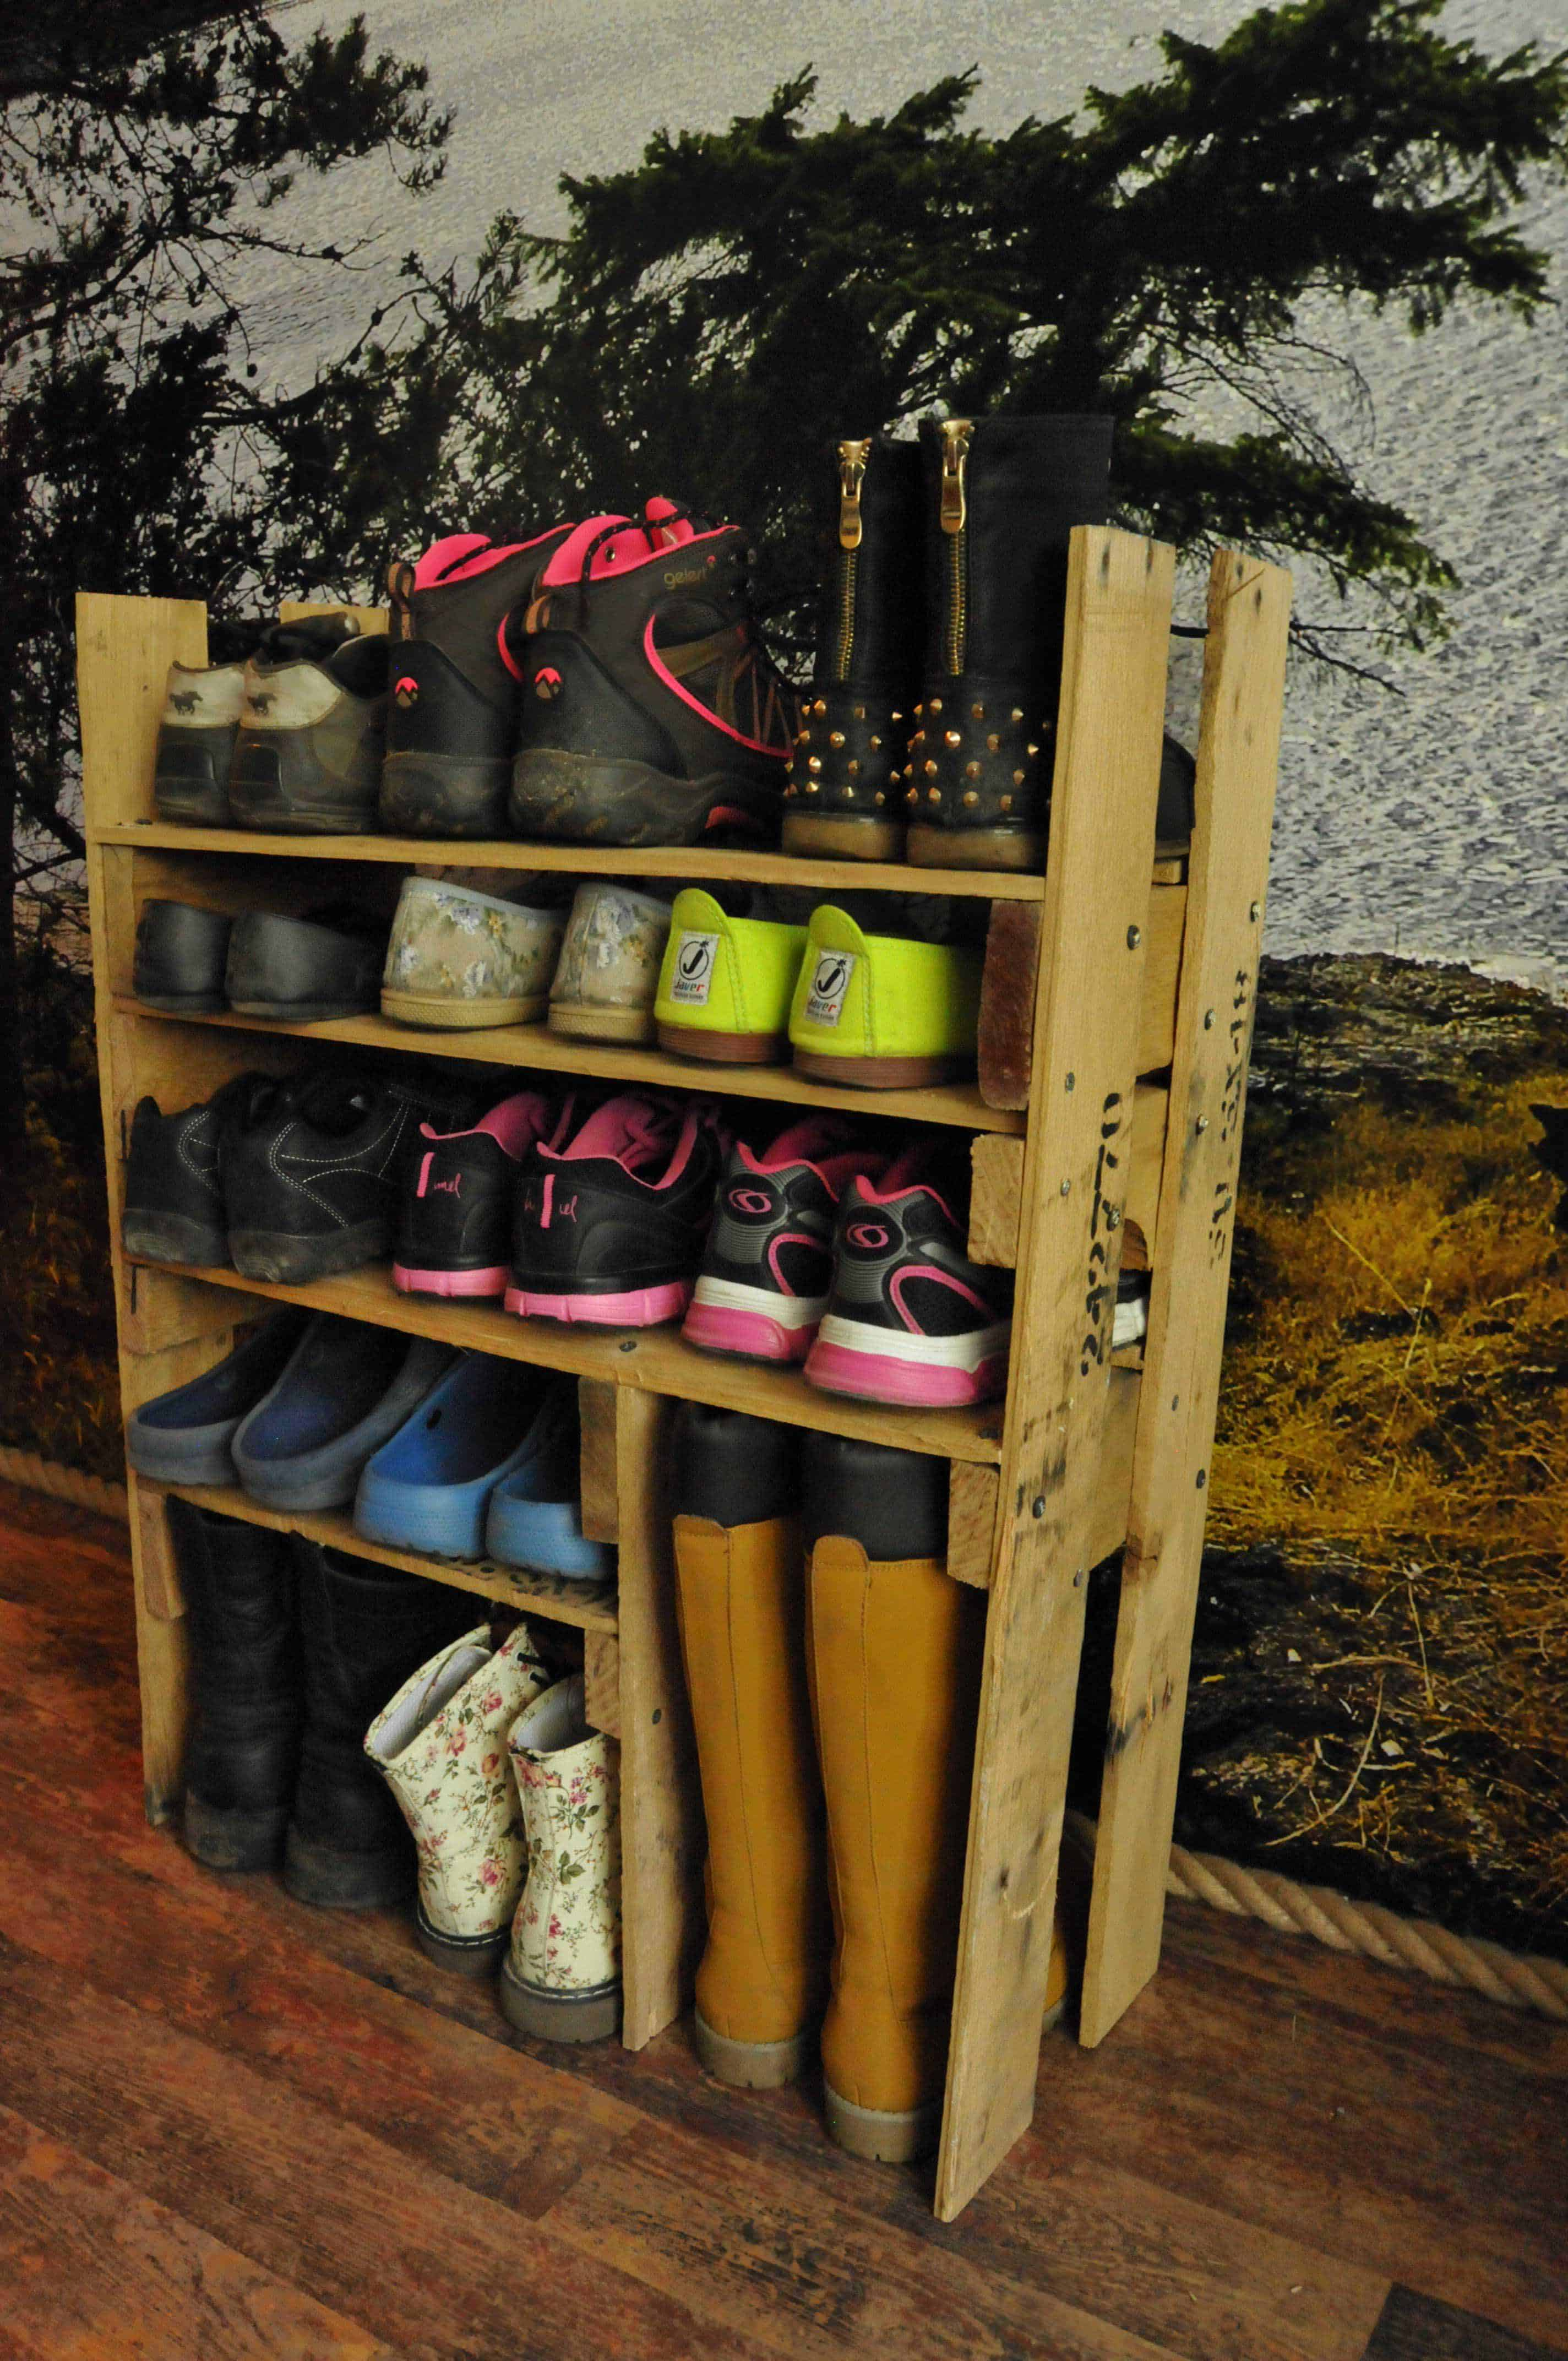 Diy Shoe Rack Diy Shoe Shelf From Pallets O Pallet Ideas O 1001 Pallets